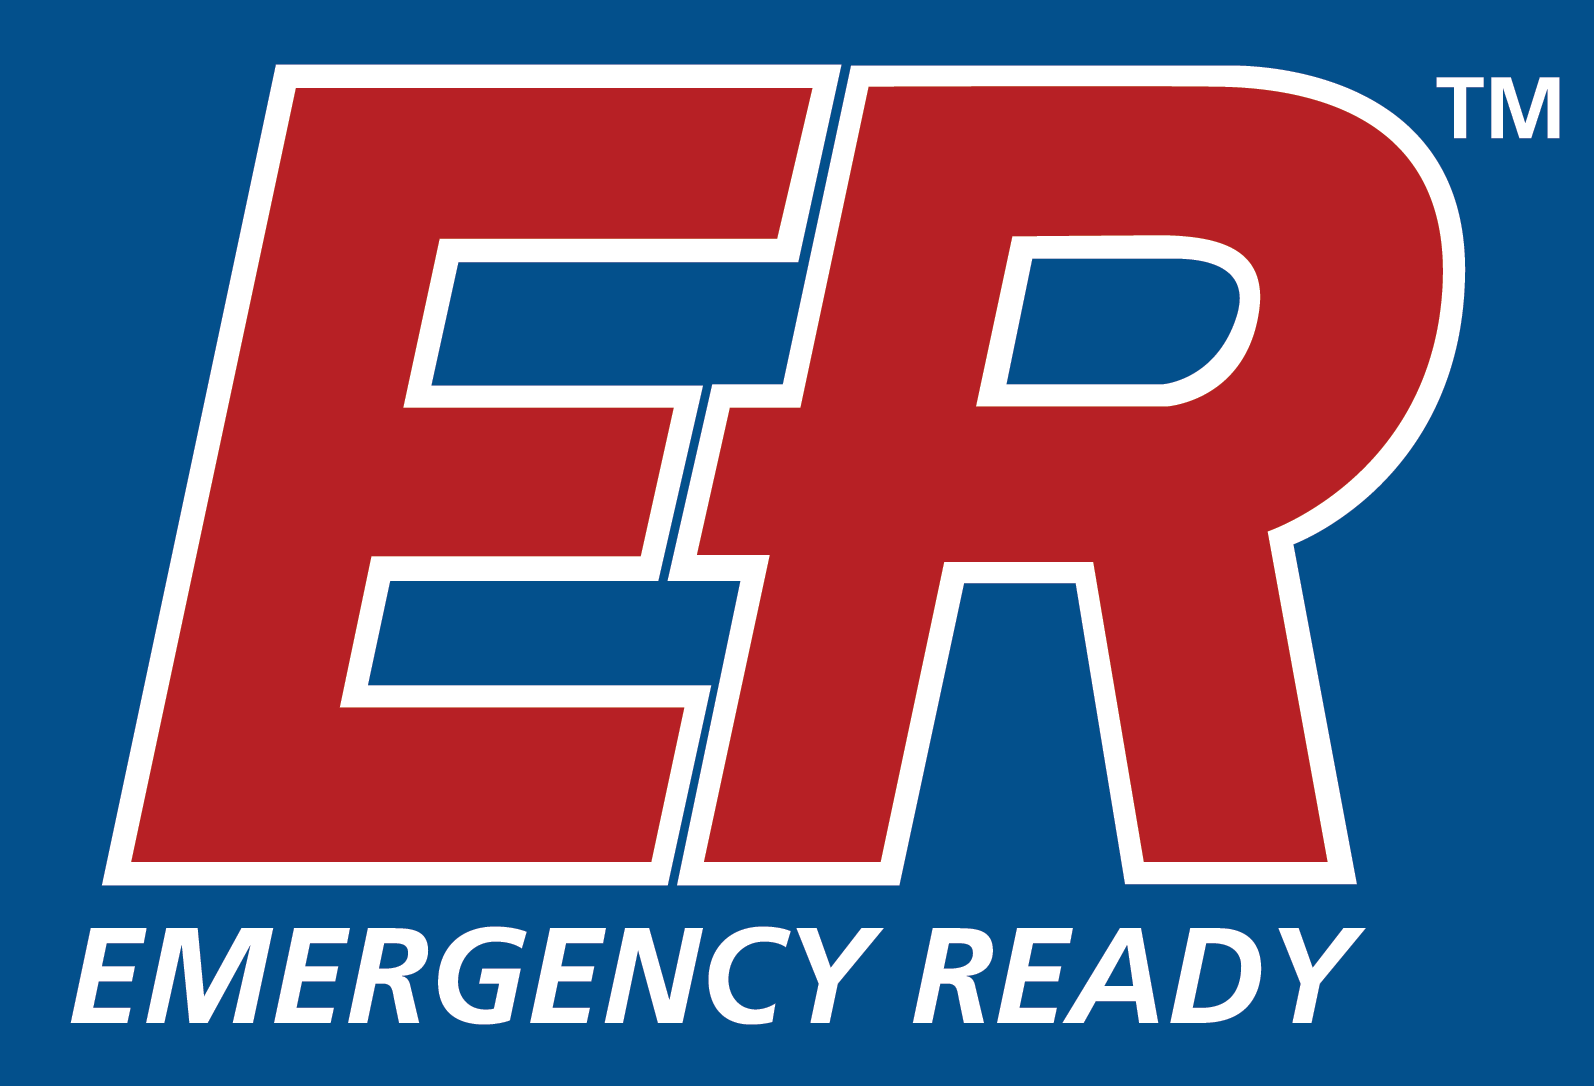 Emergency Ready Disaster Preparedness Kits